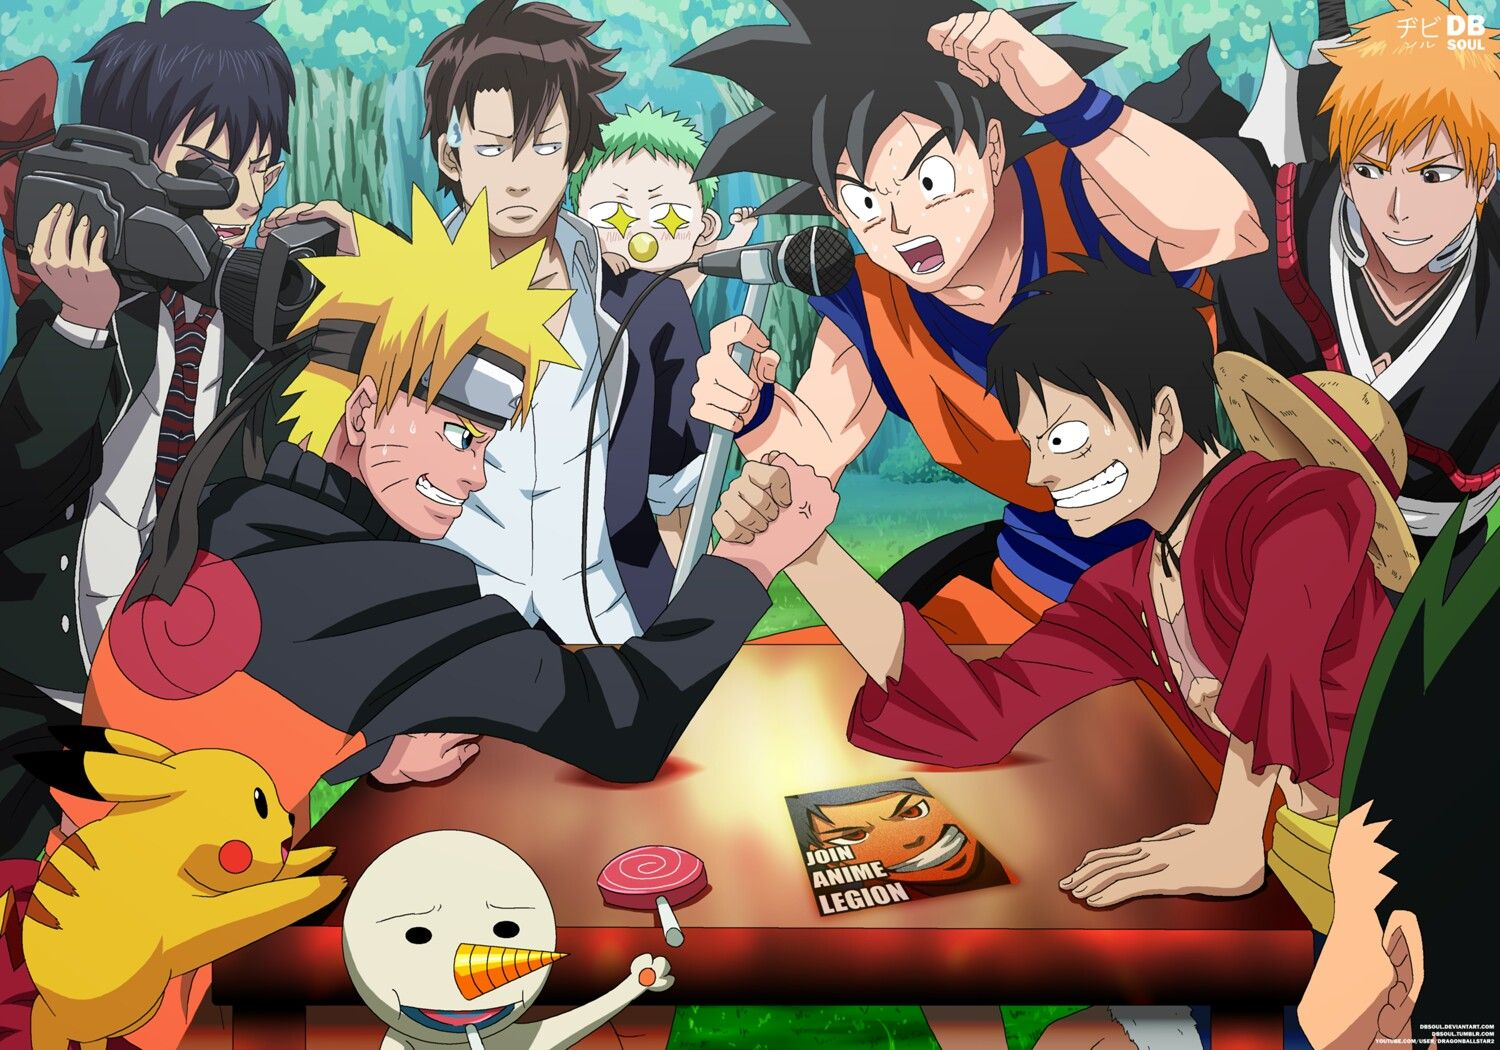 Naruto Vs Luffy Arm Wrestling Match All Anime Characters Anime Shows Anime